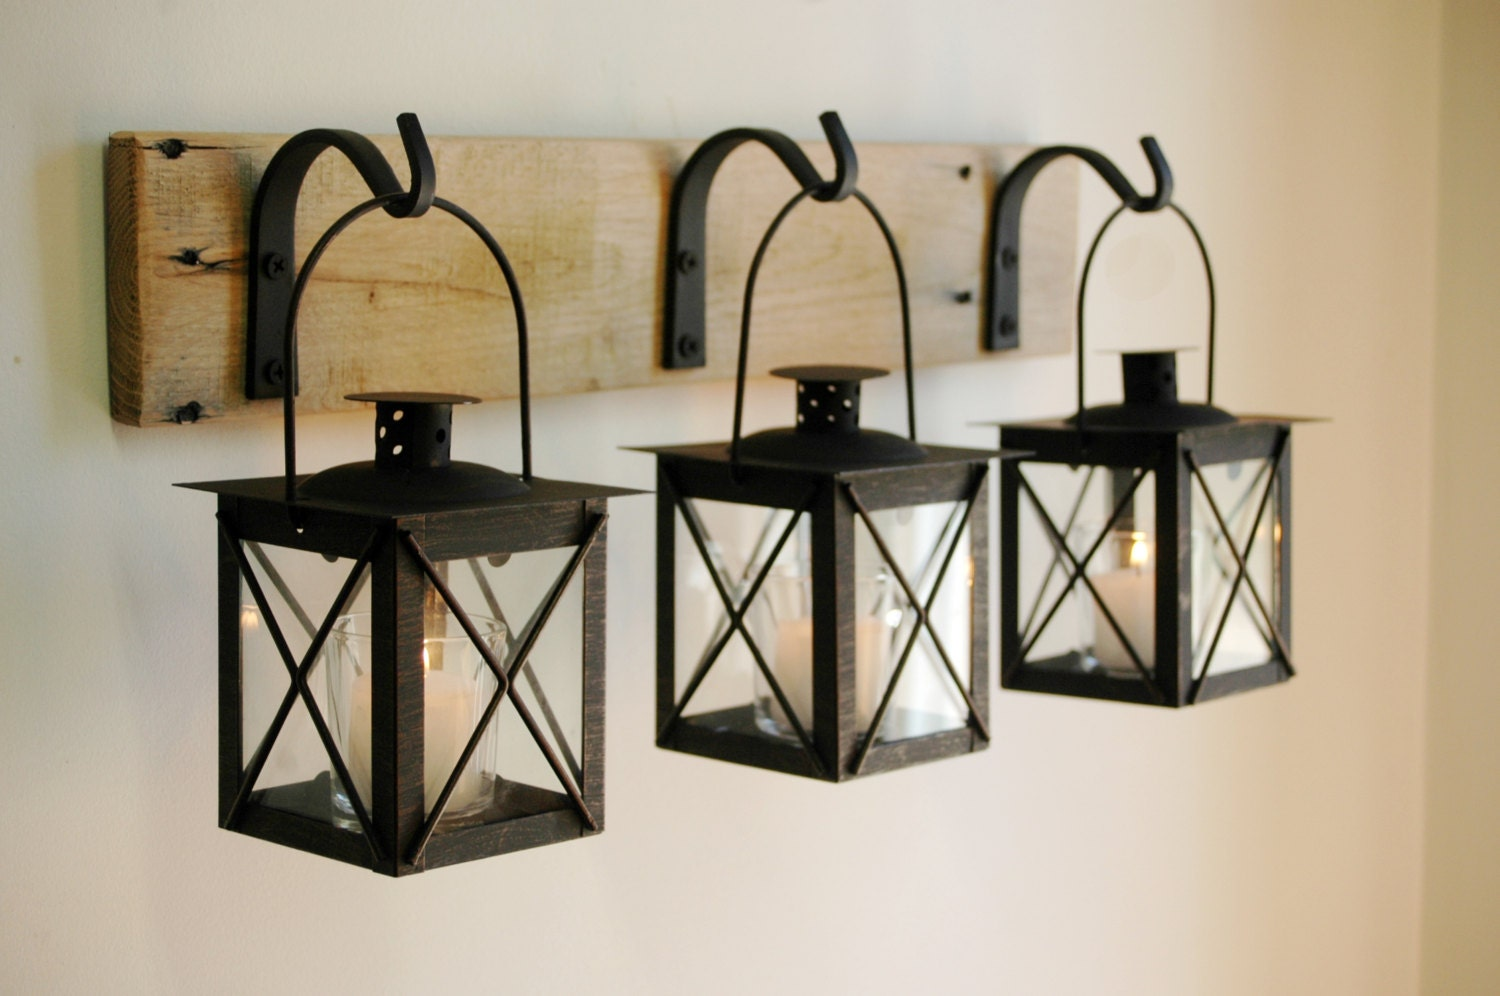 Black lantern trio wall decor home decor rustic decor for Unusual home accessories